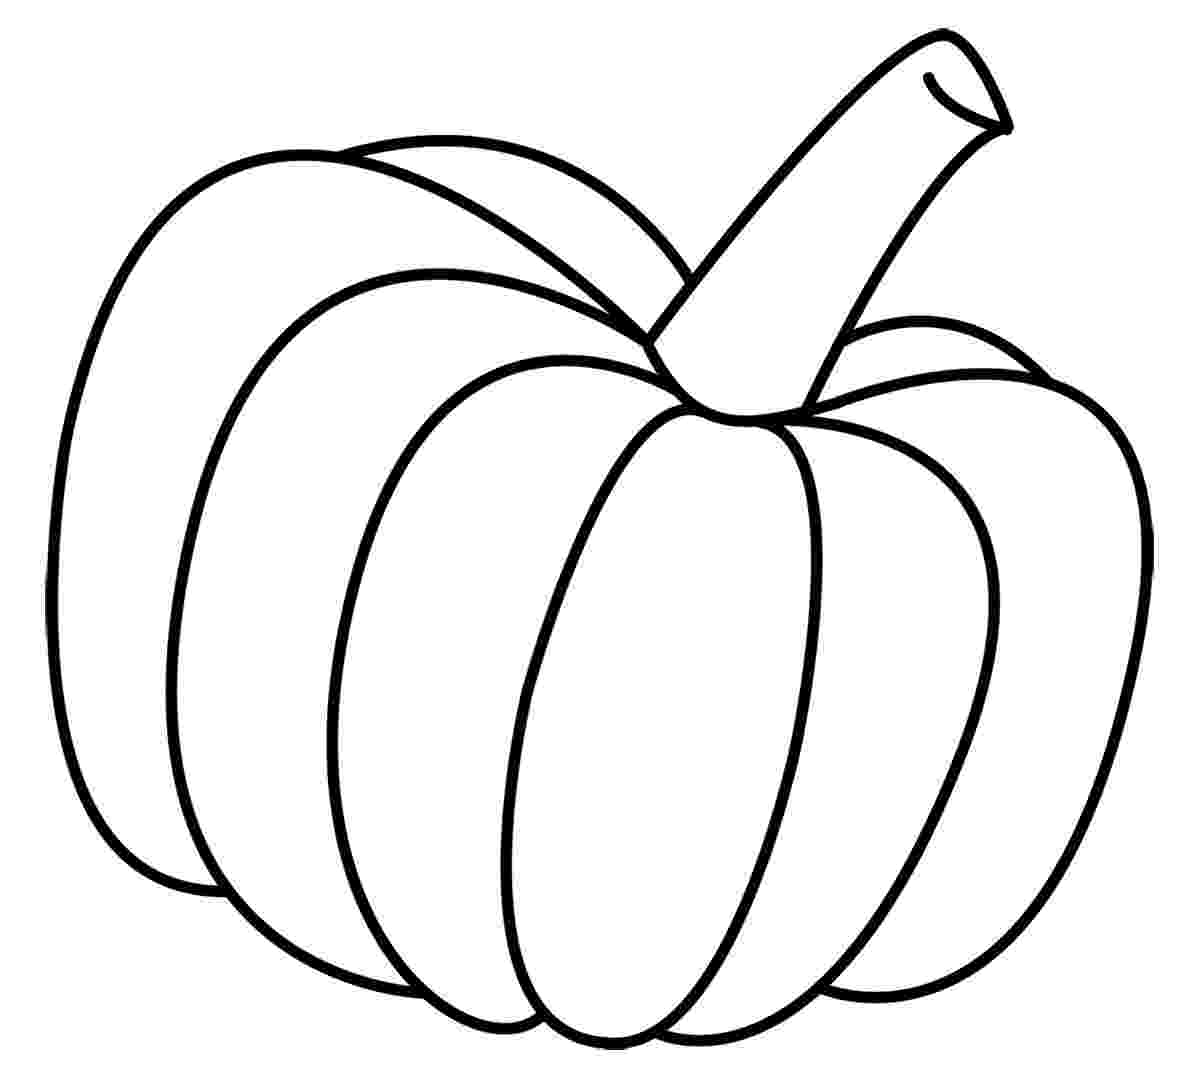 images of pumpkins to color free printable pumpkin coloring pages for kids color of pumpkins images to